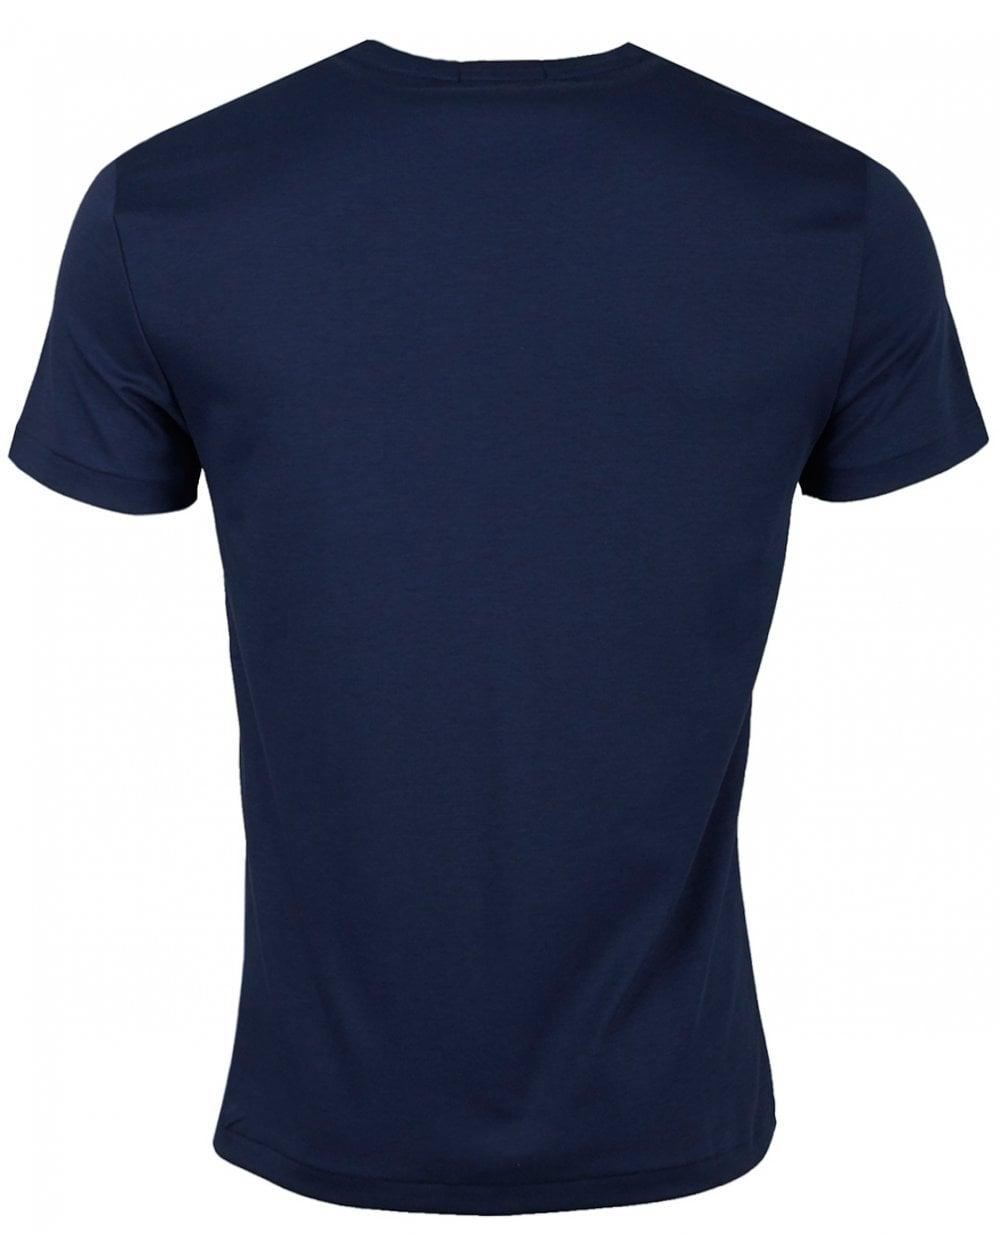 062c1d00a Polo Ralph Lauren Custom Fit Pima Cotton Crew Neck in Blue for Men ...